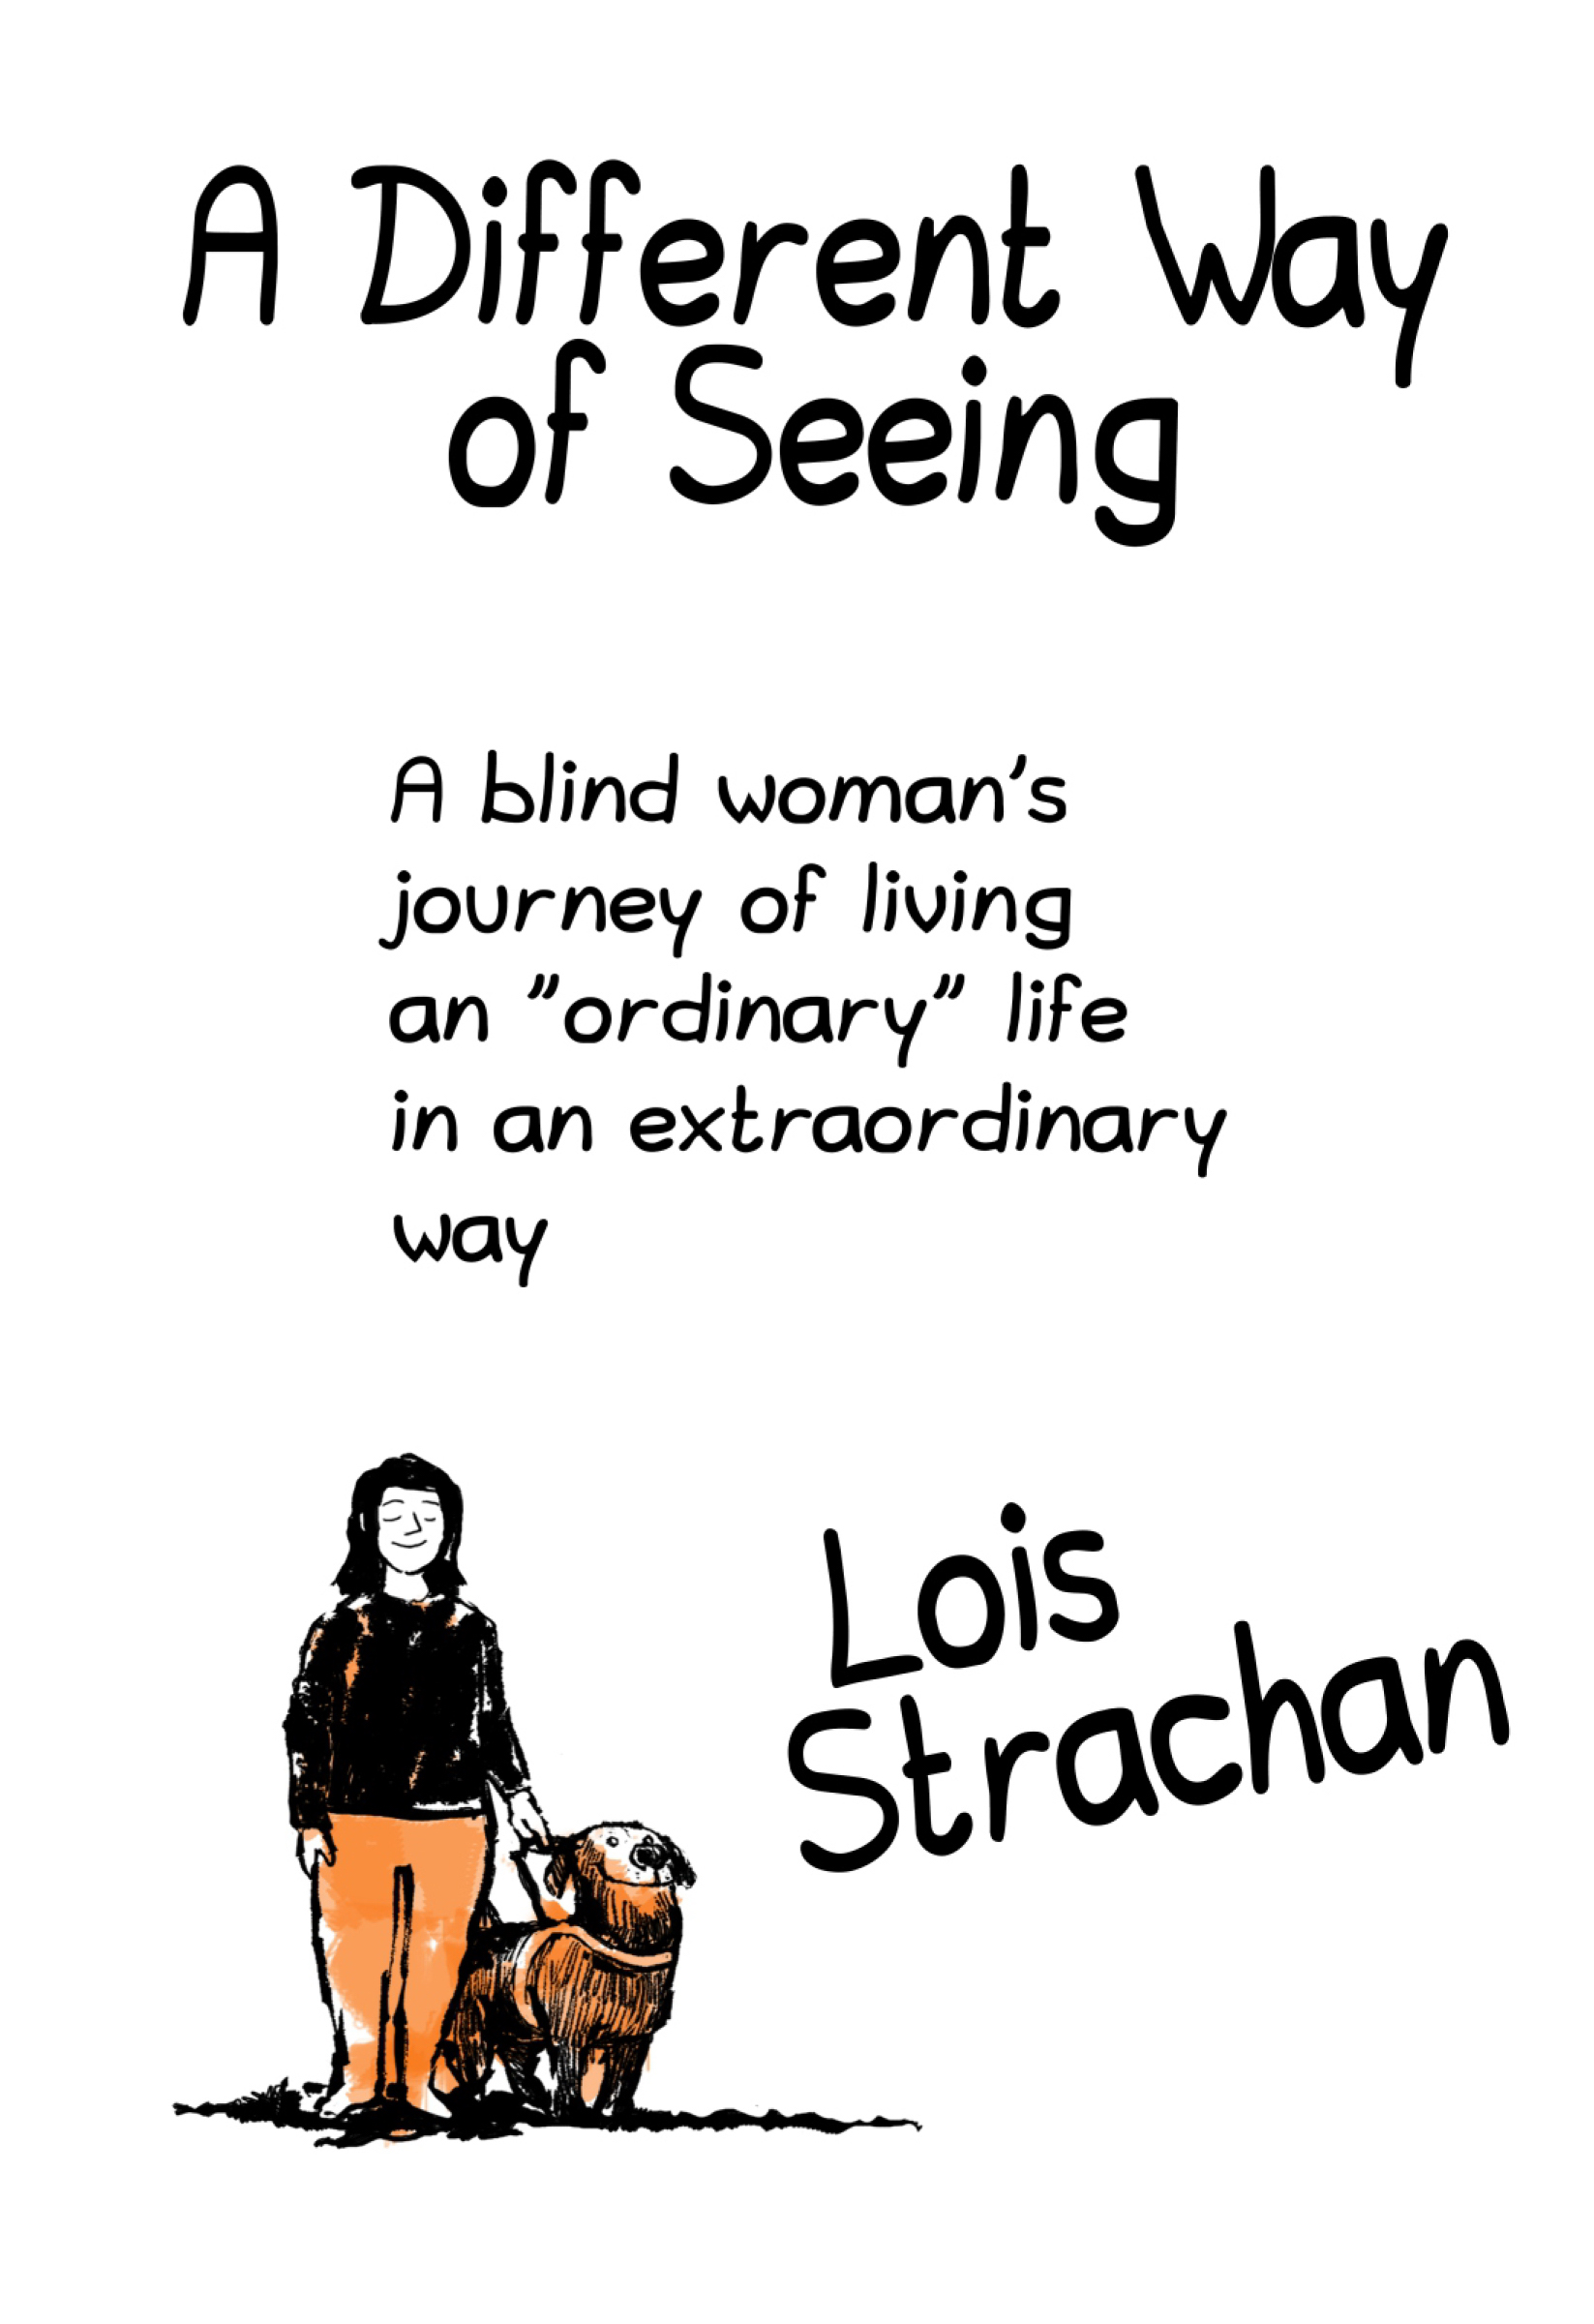 A Different Way of Seeing by Lois Strachan